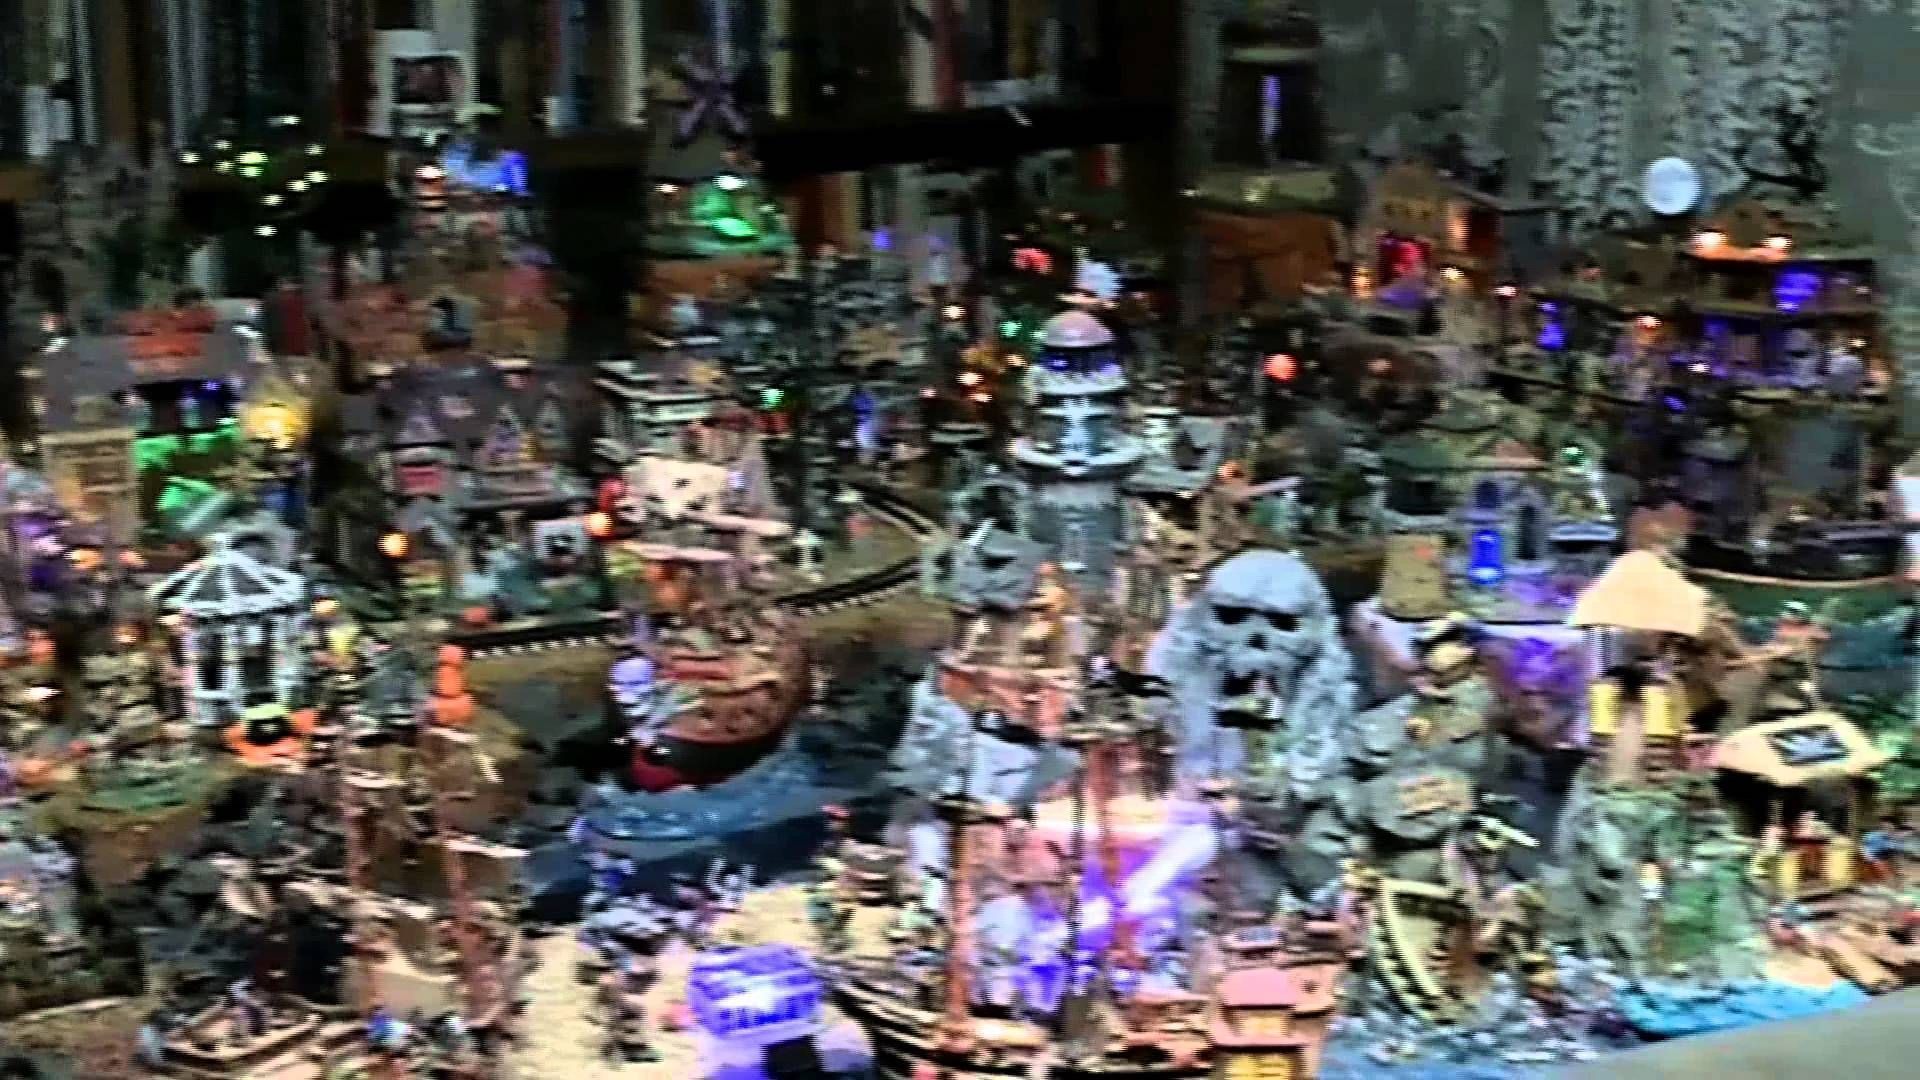 Crazy Halloween Village Display posted on by